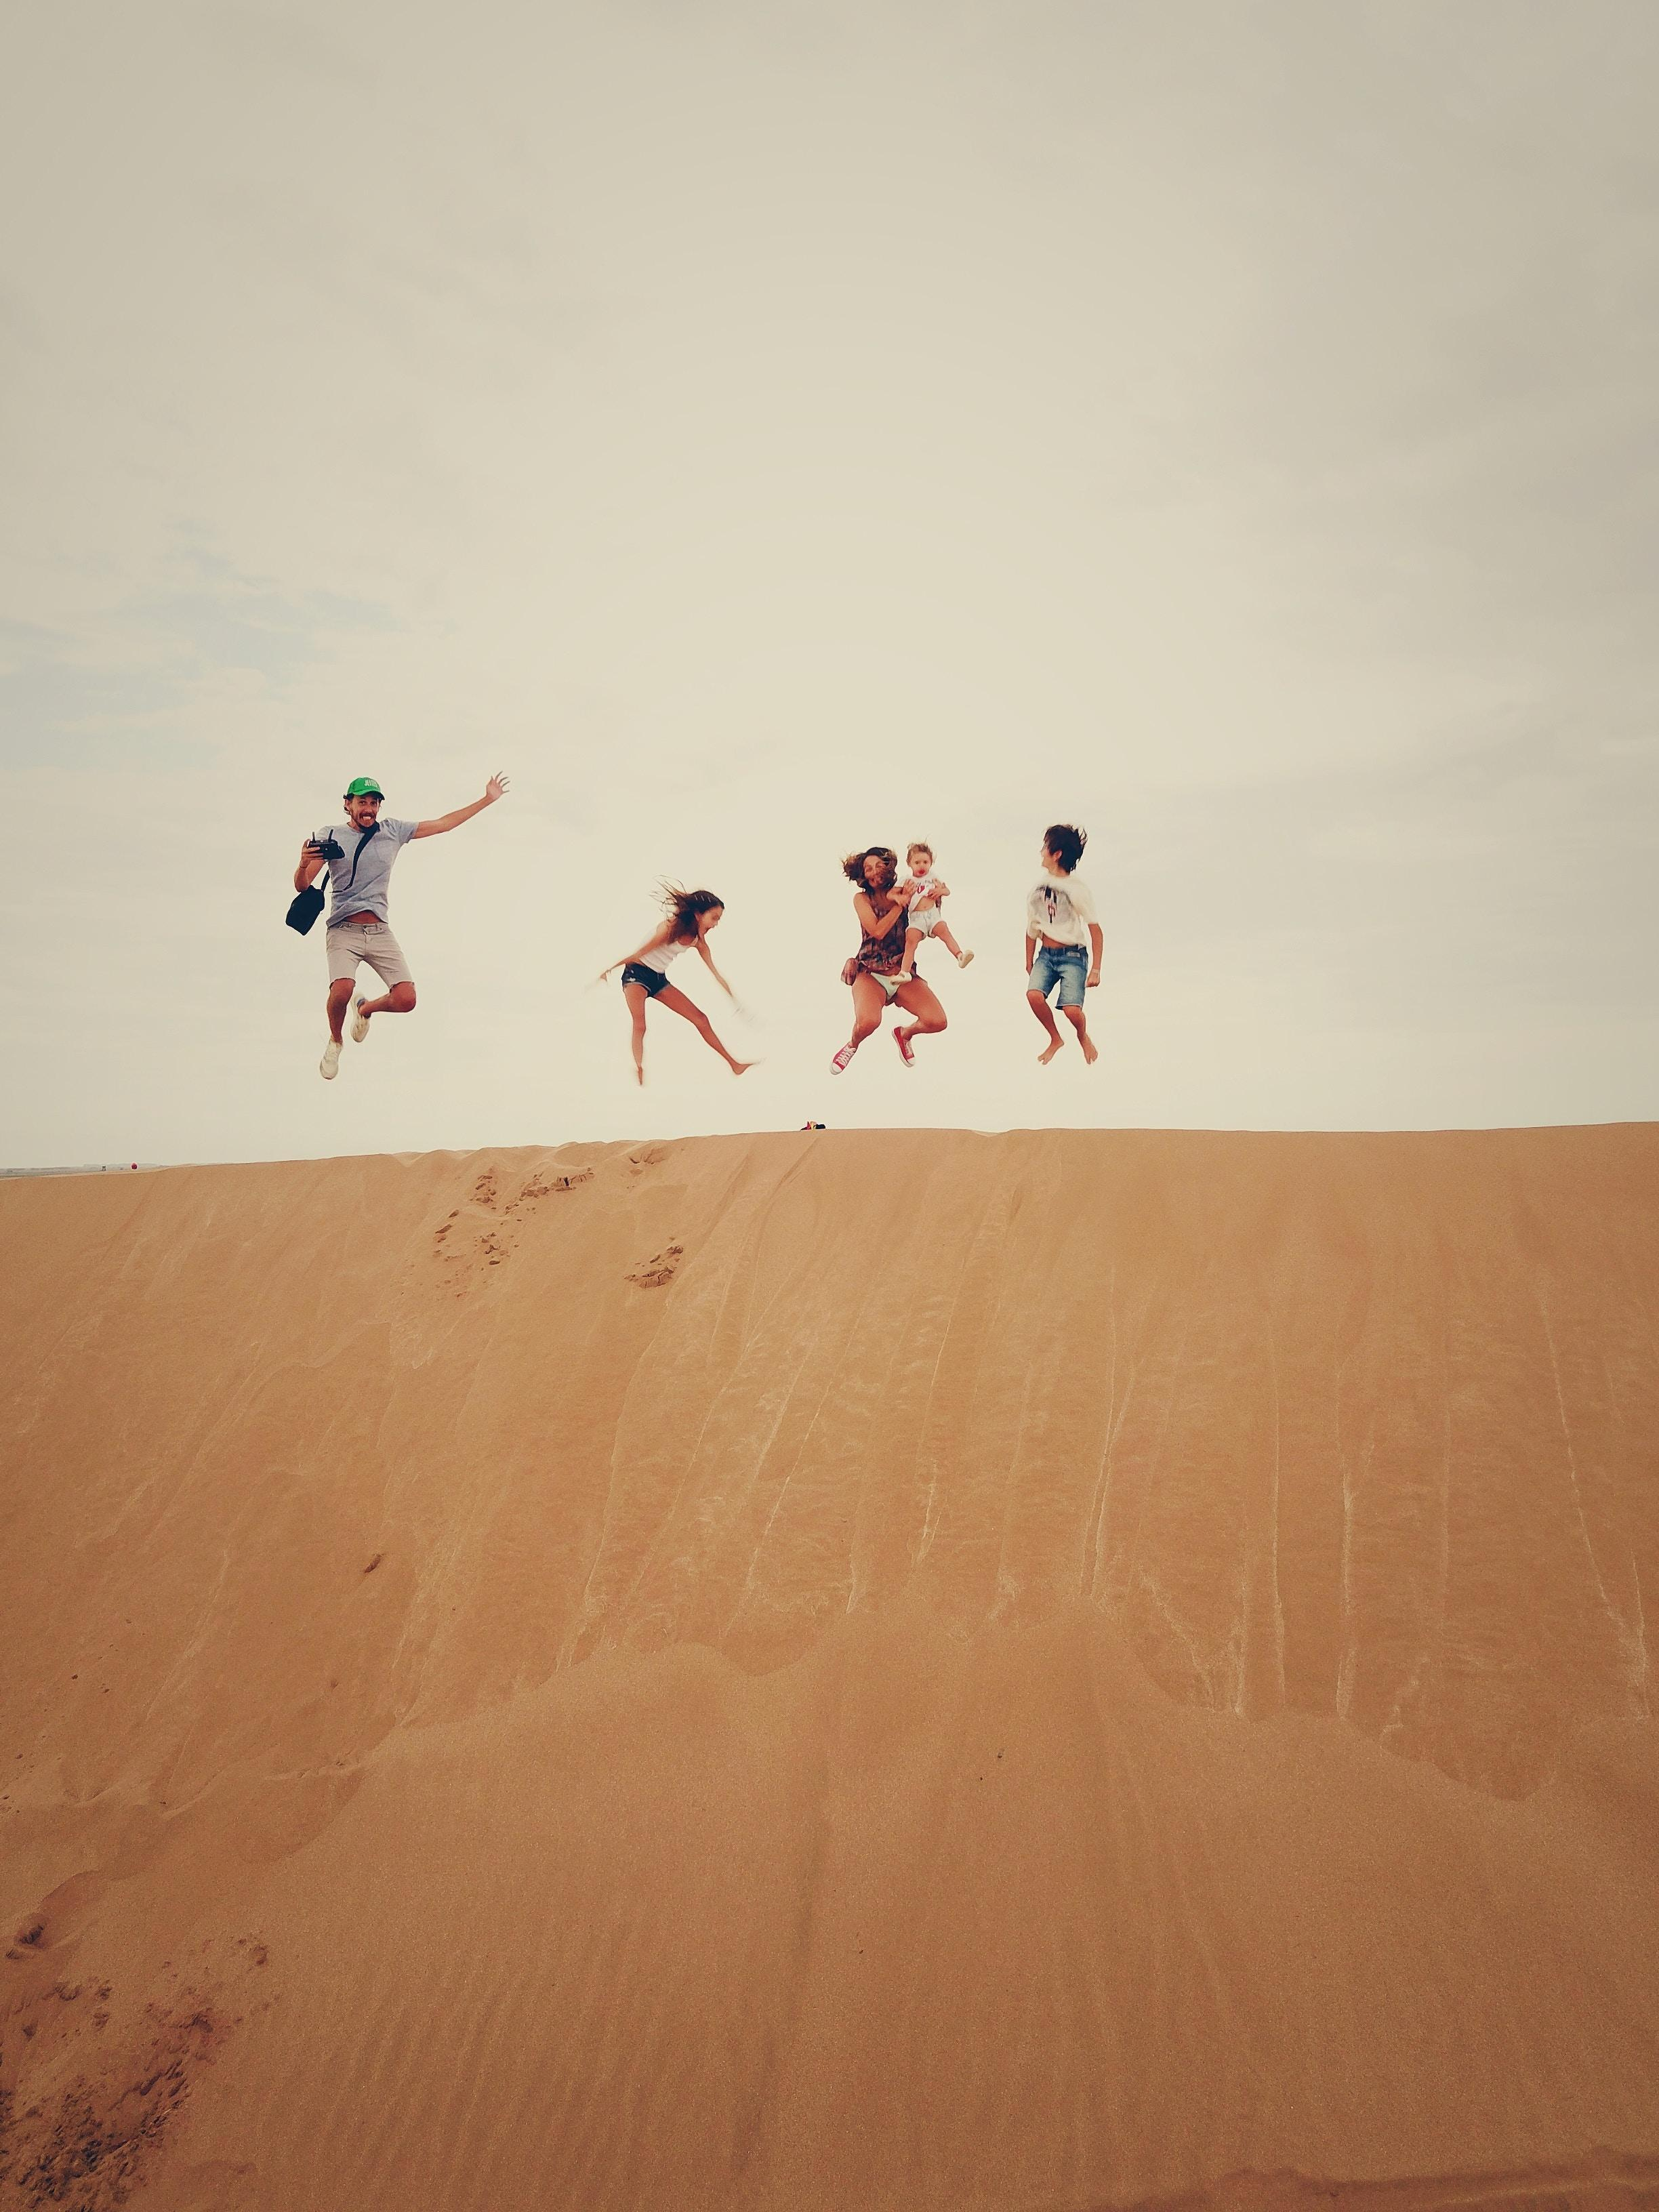 A family jumping into the air over a sand dune